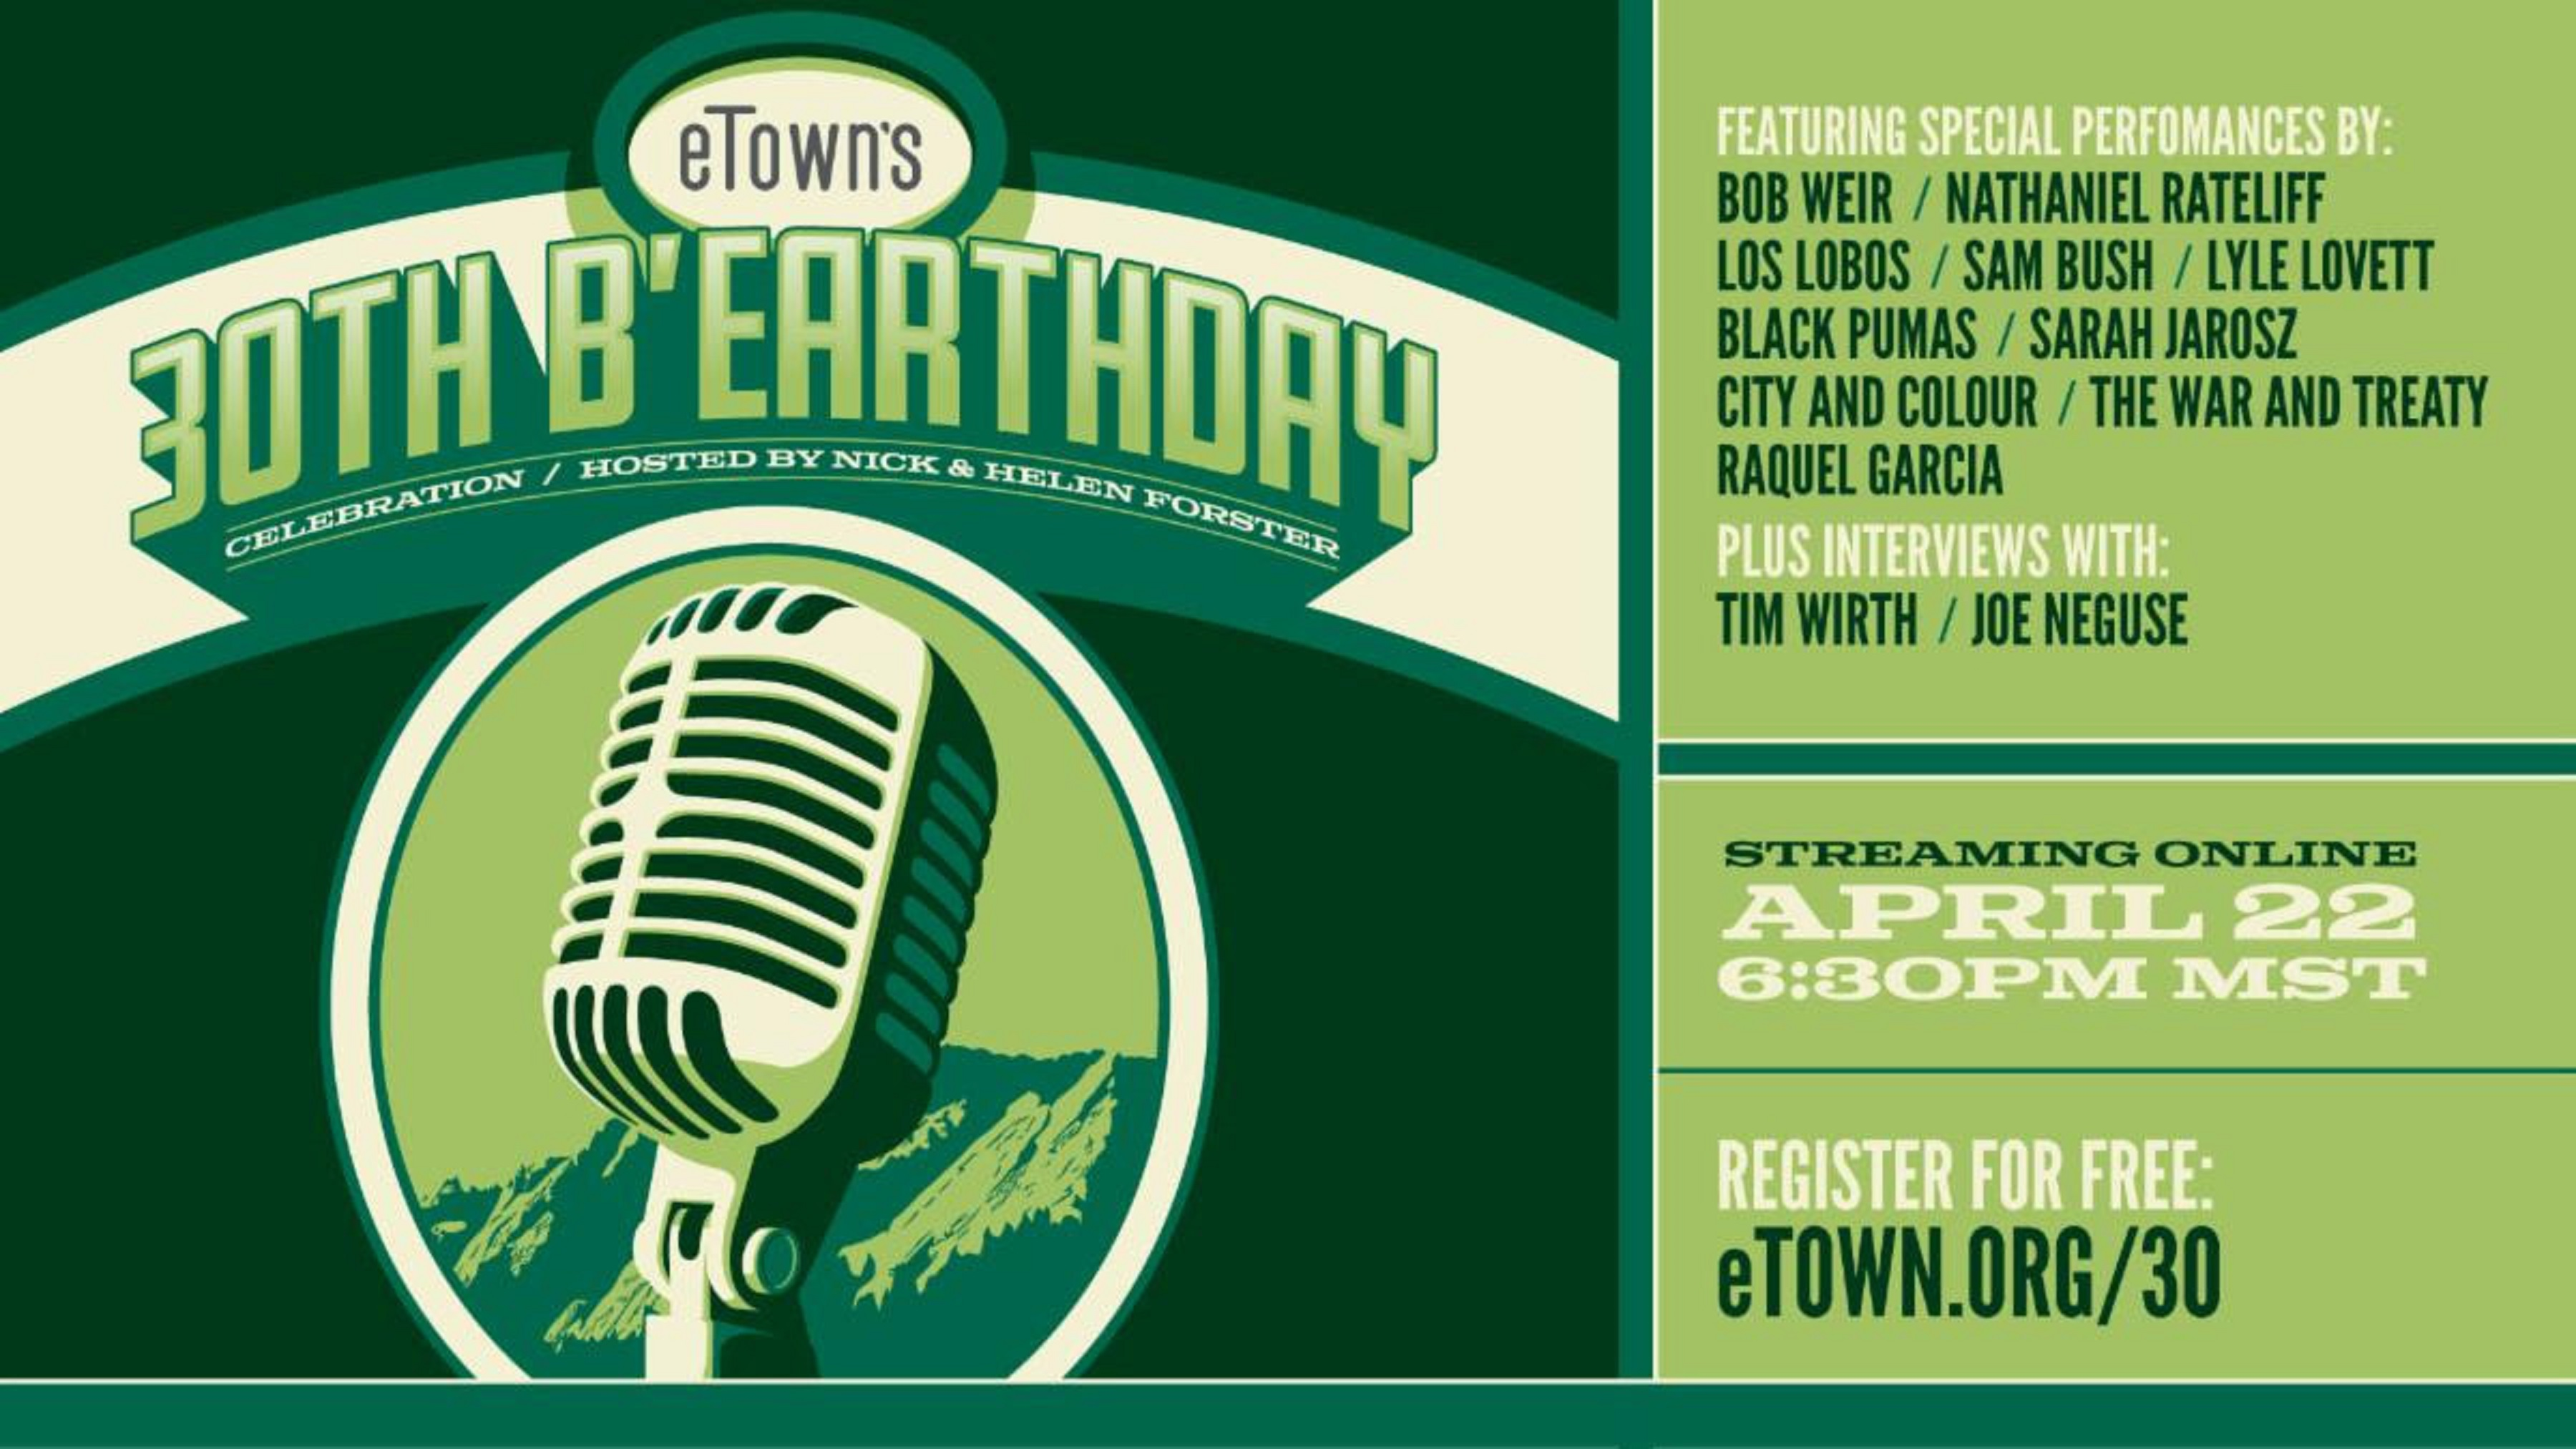 eTown Expands Lineup For Virtual 30th b'Earthday Celebration On April 22nd